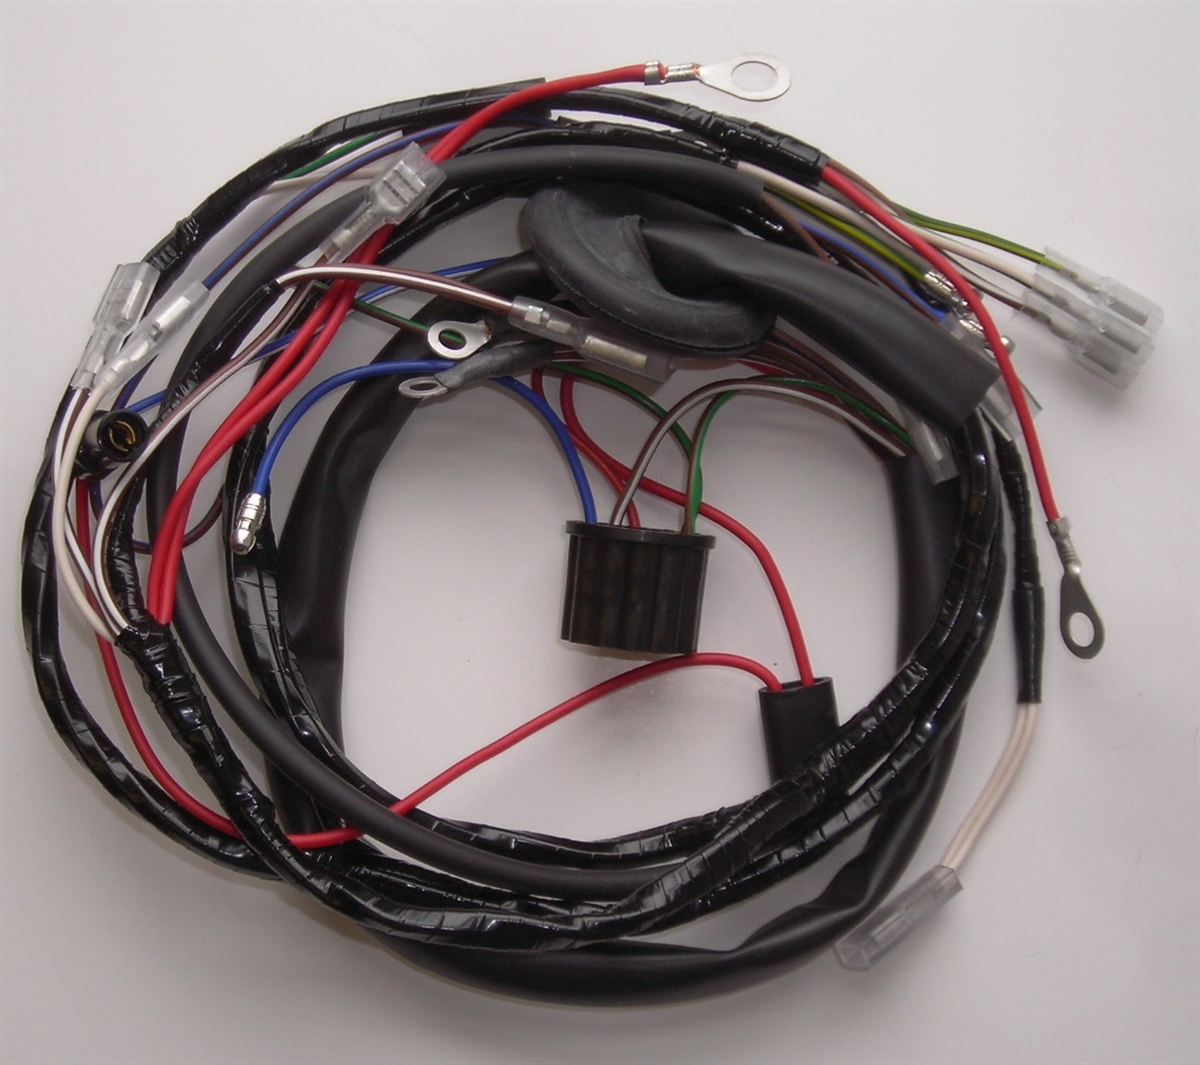 A50 & A65 Motorcycle Wiring Harness